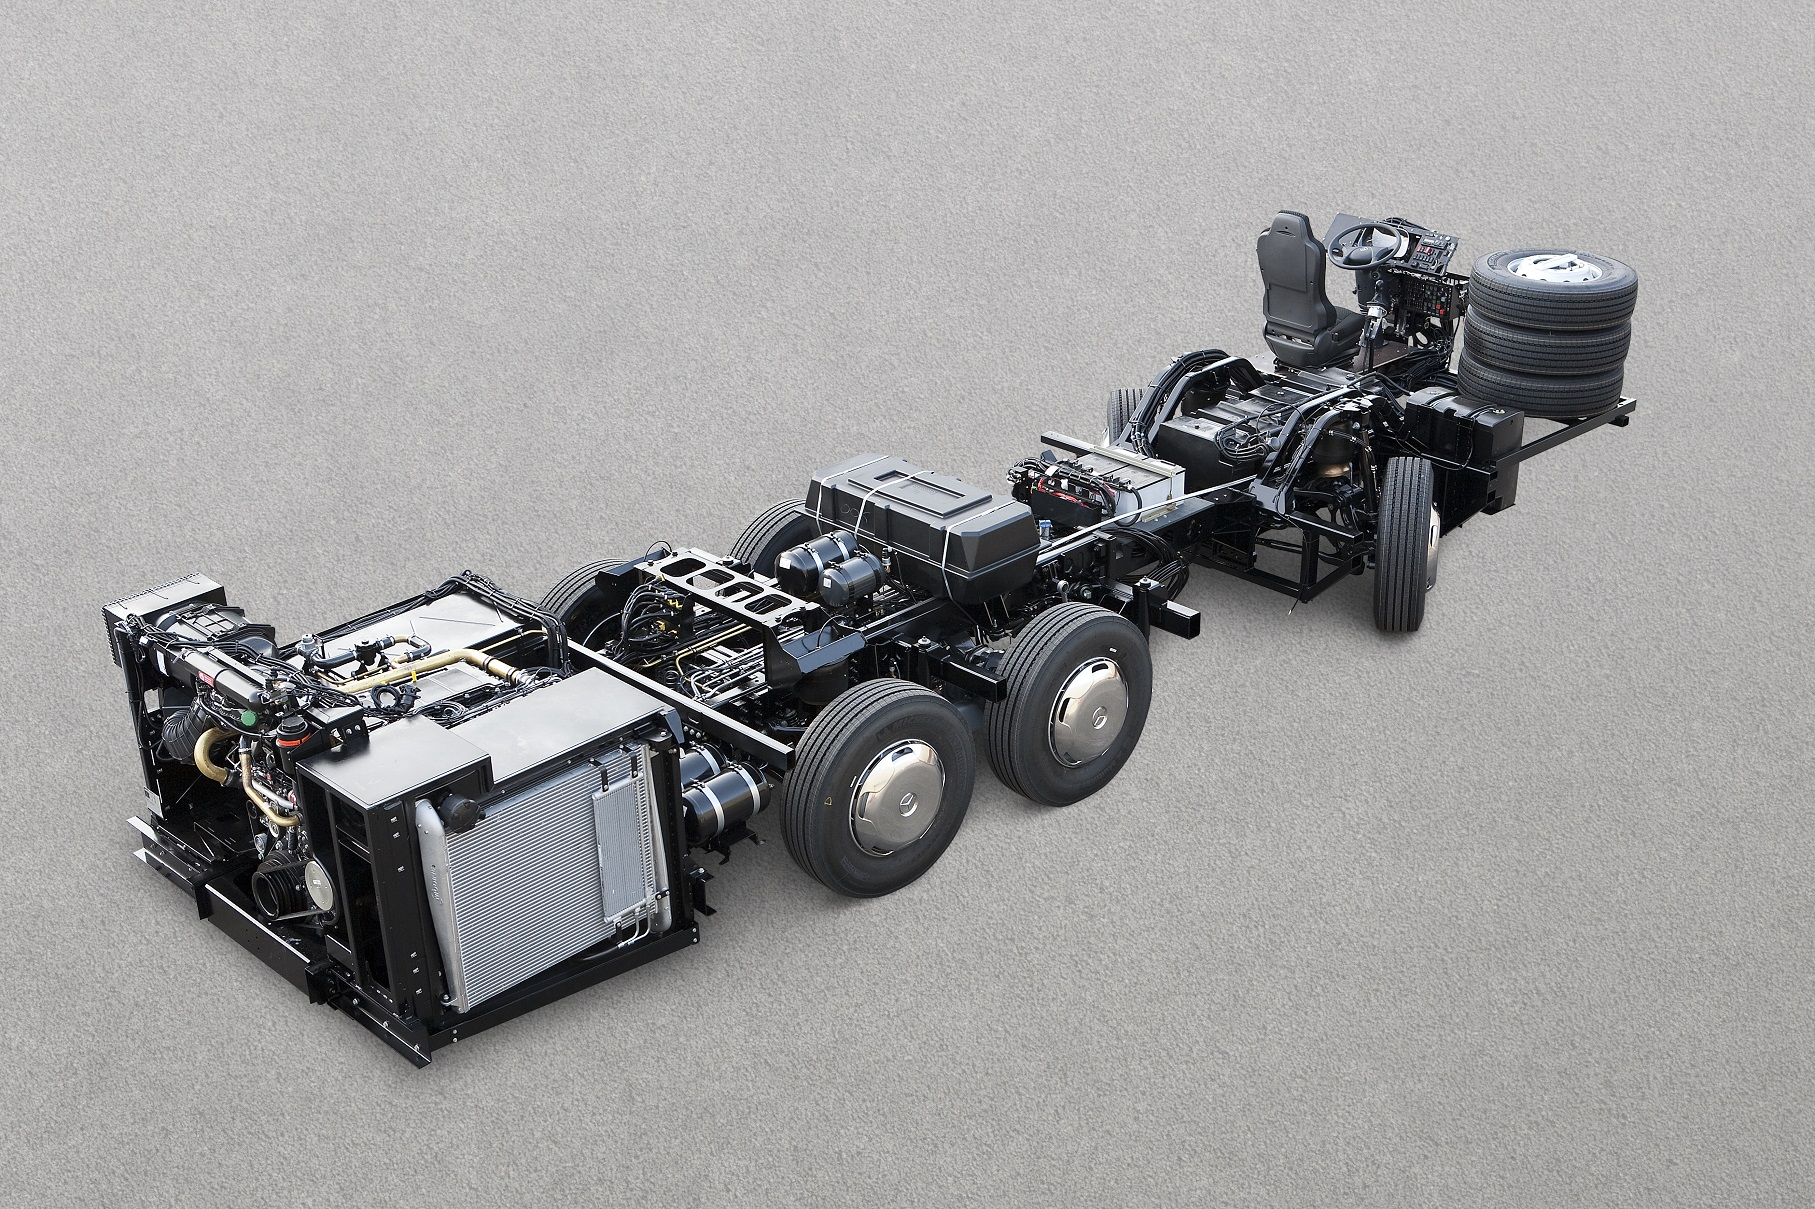 Mercedes Benz Buses Completes Its Range Of Chassis In Euro